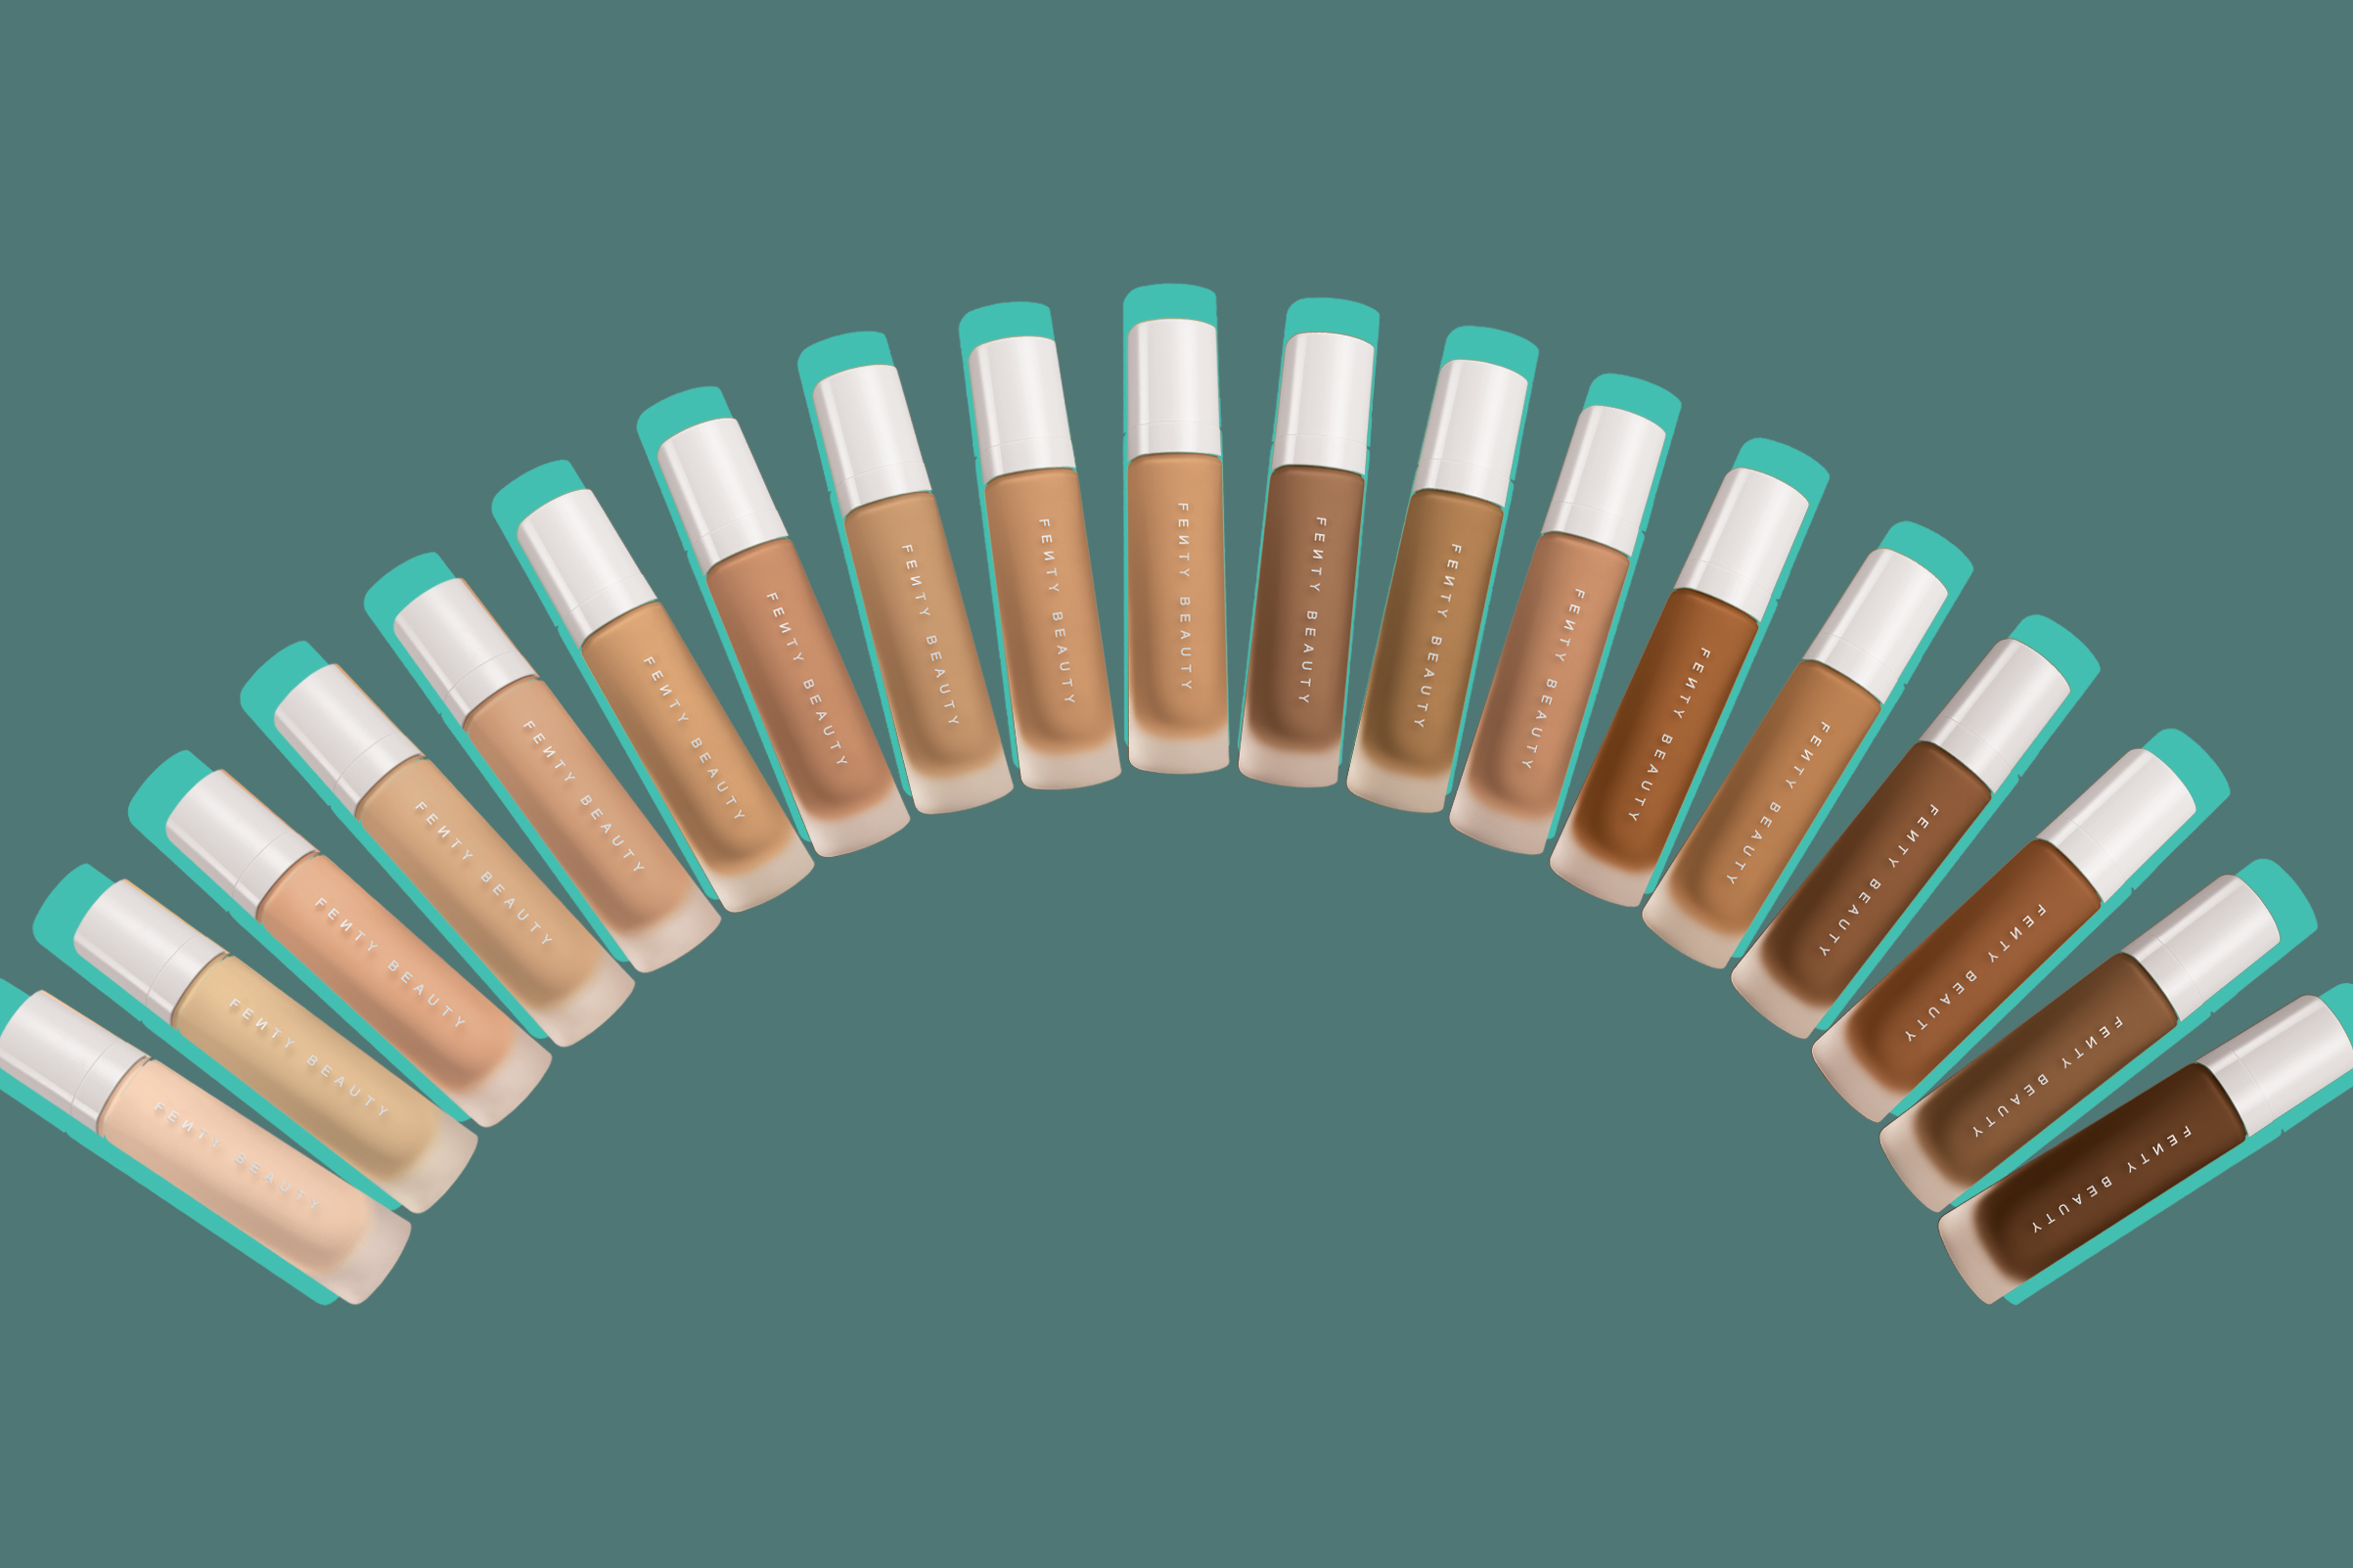 Fenty Beauty is one of the best inventions of 2017